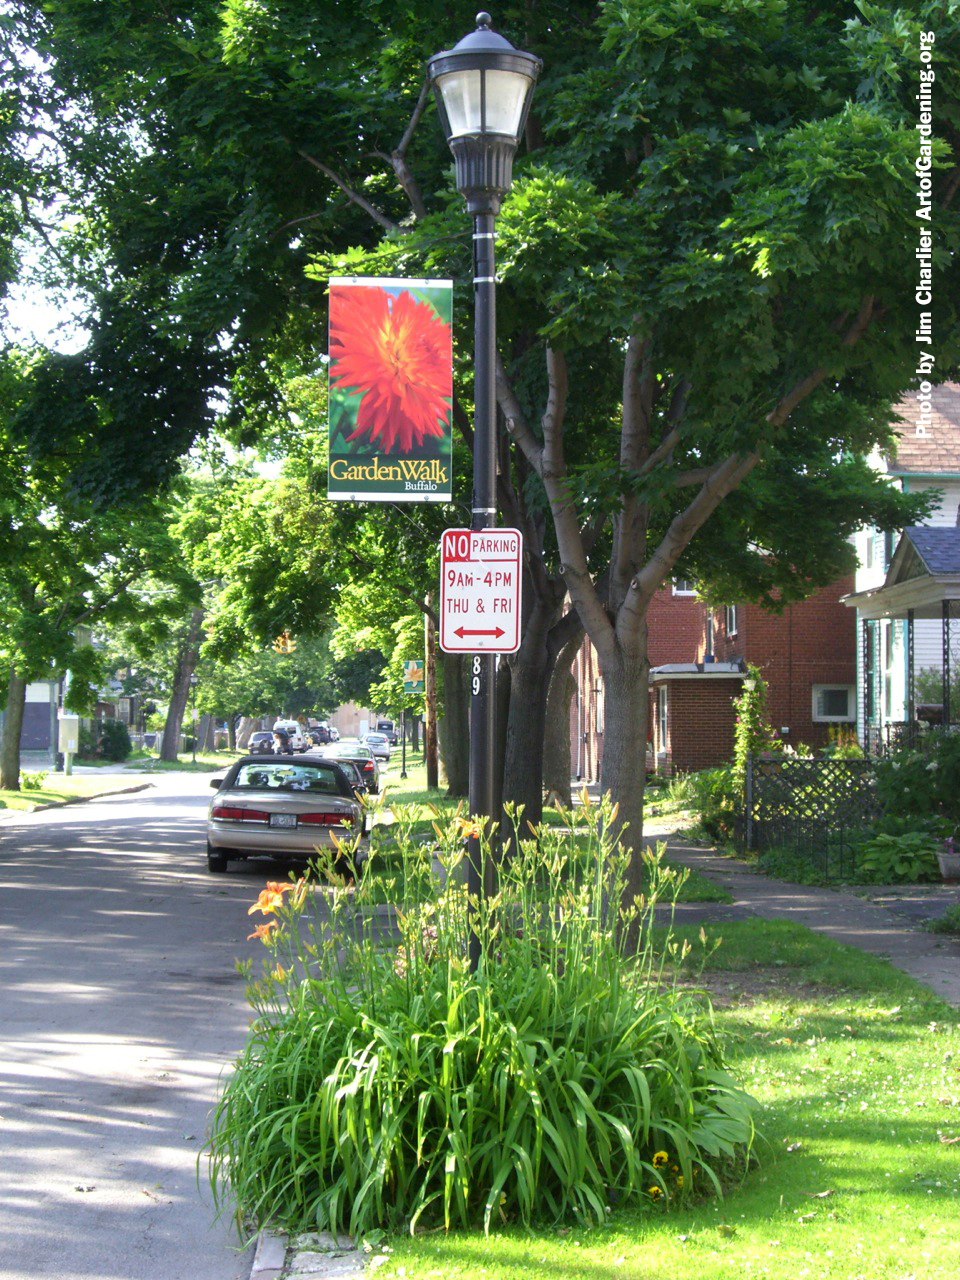 Garden Walk Buffalo pole banners by Jim Charlier